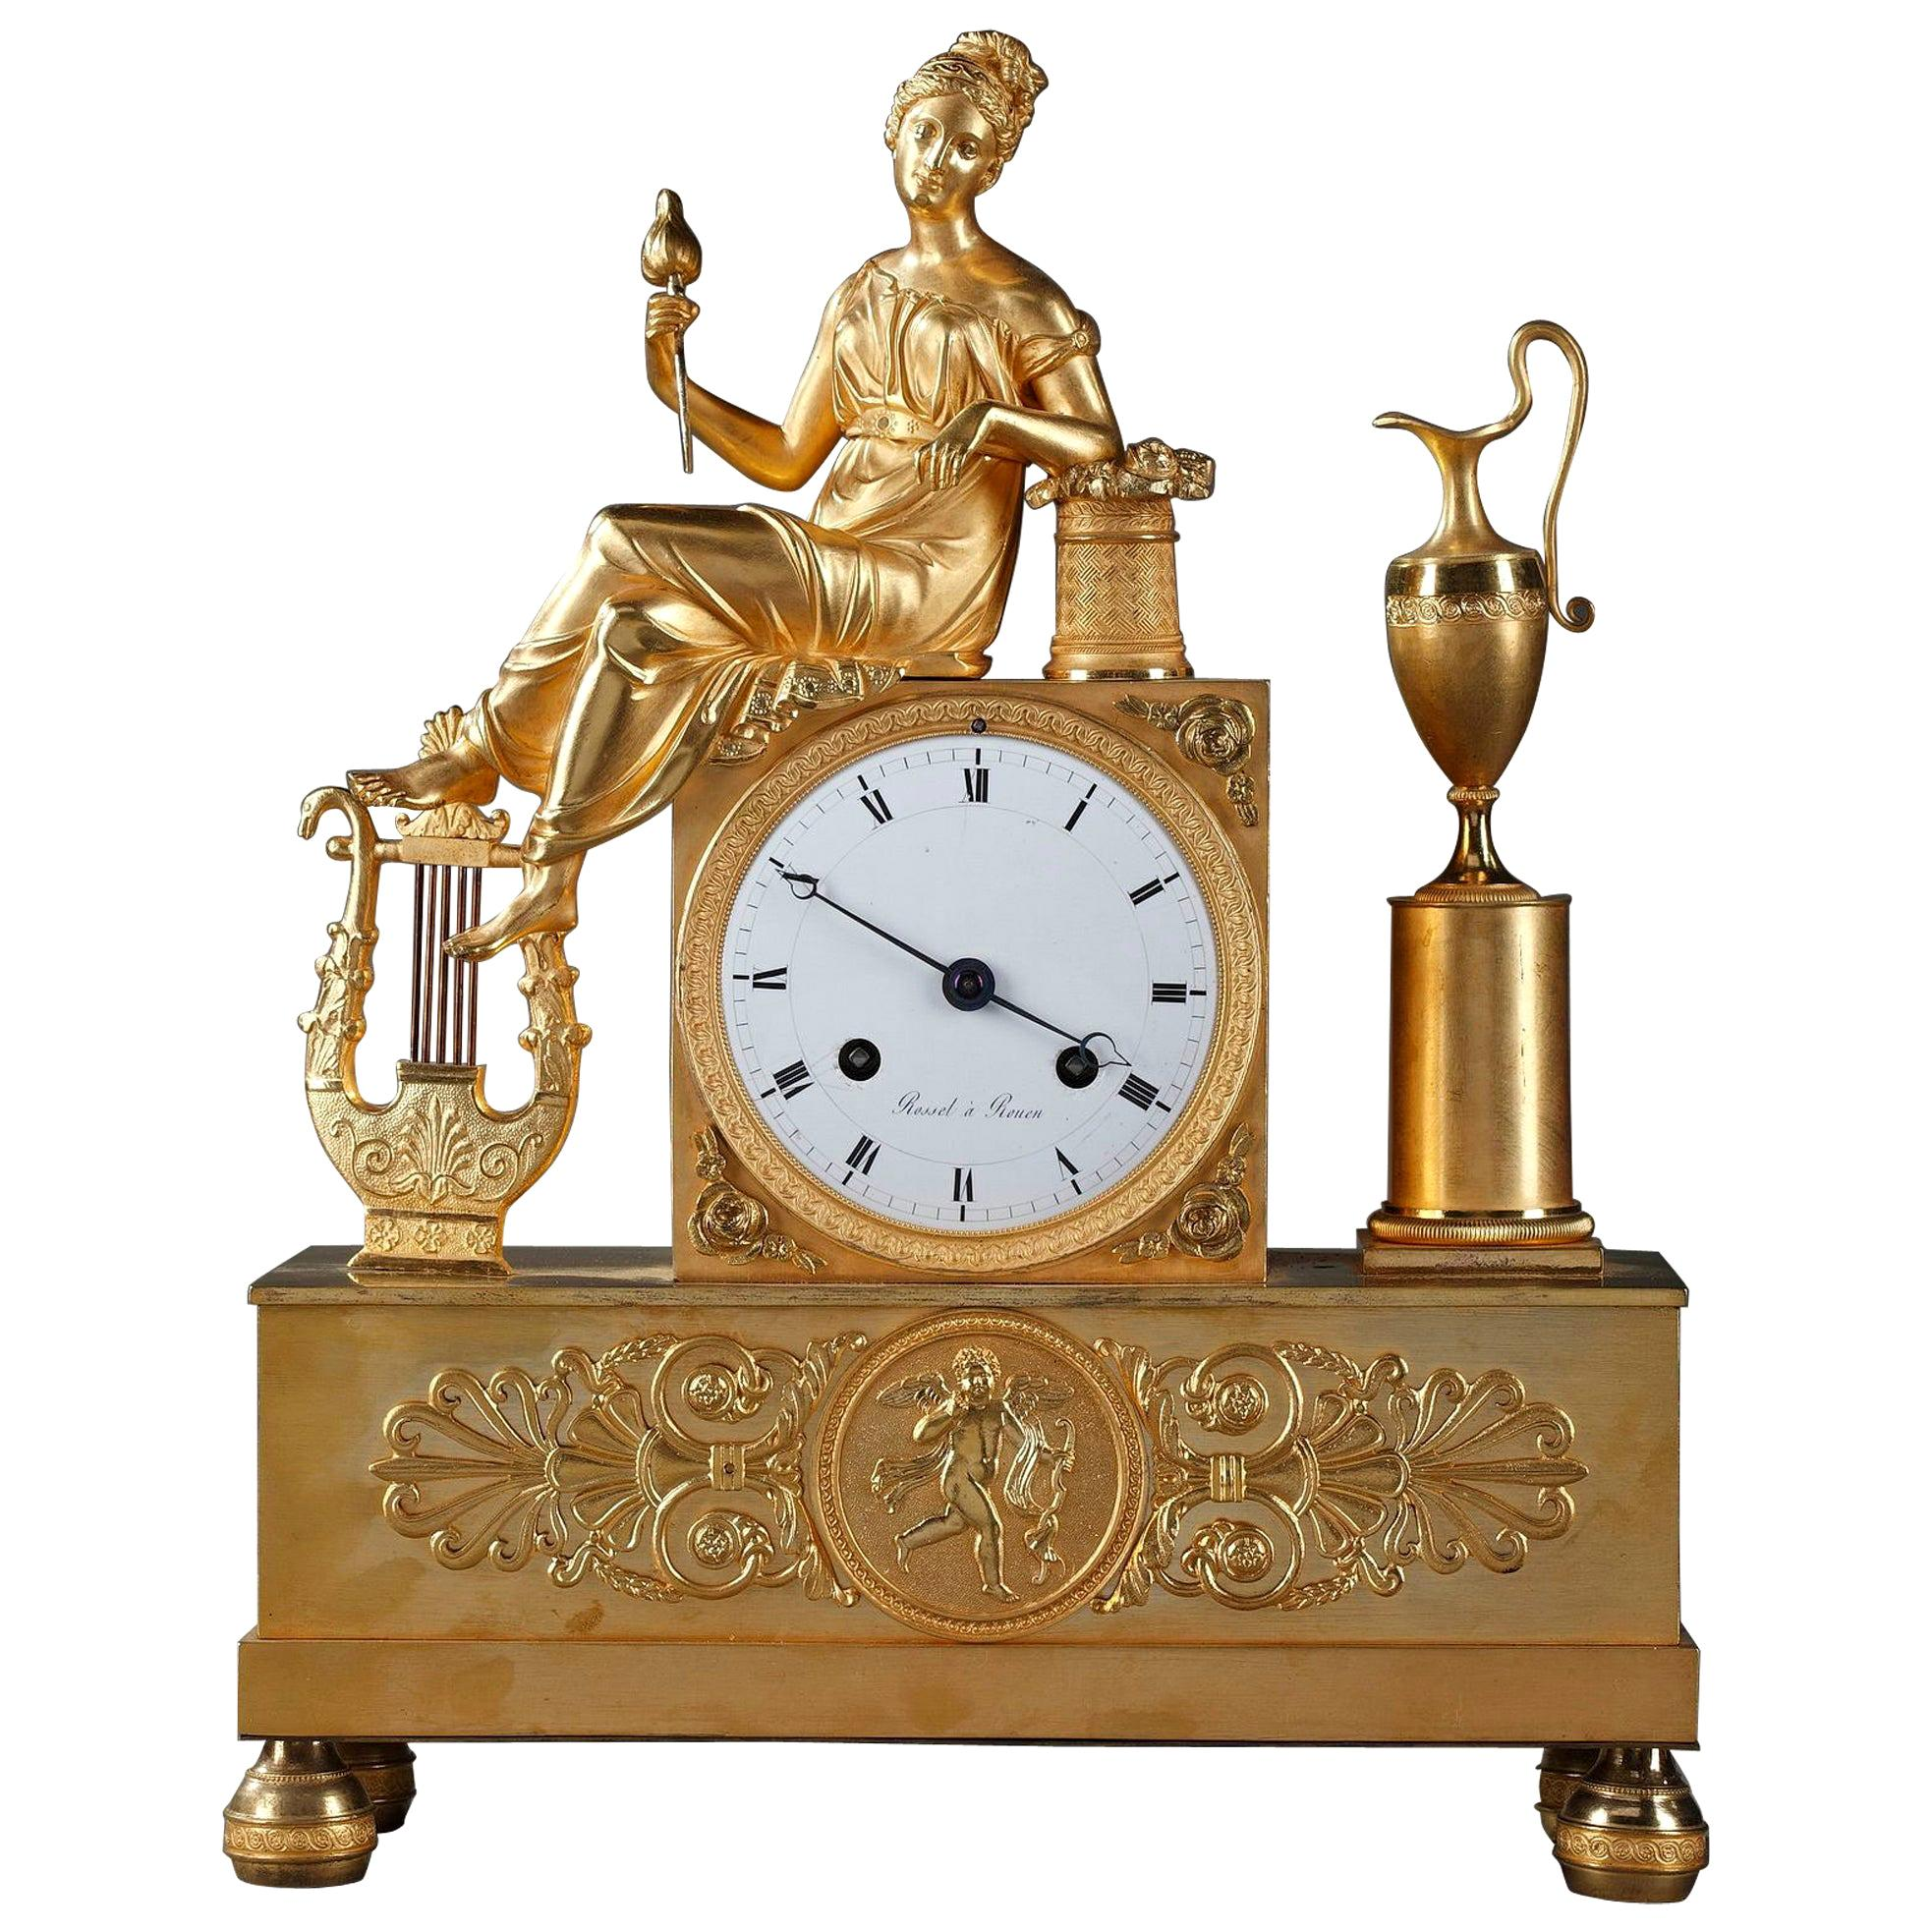 Empire Pendulum Clock the Spinner, Signed Rossel in Rouen